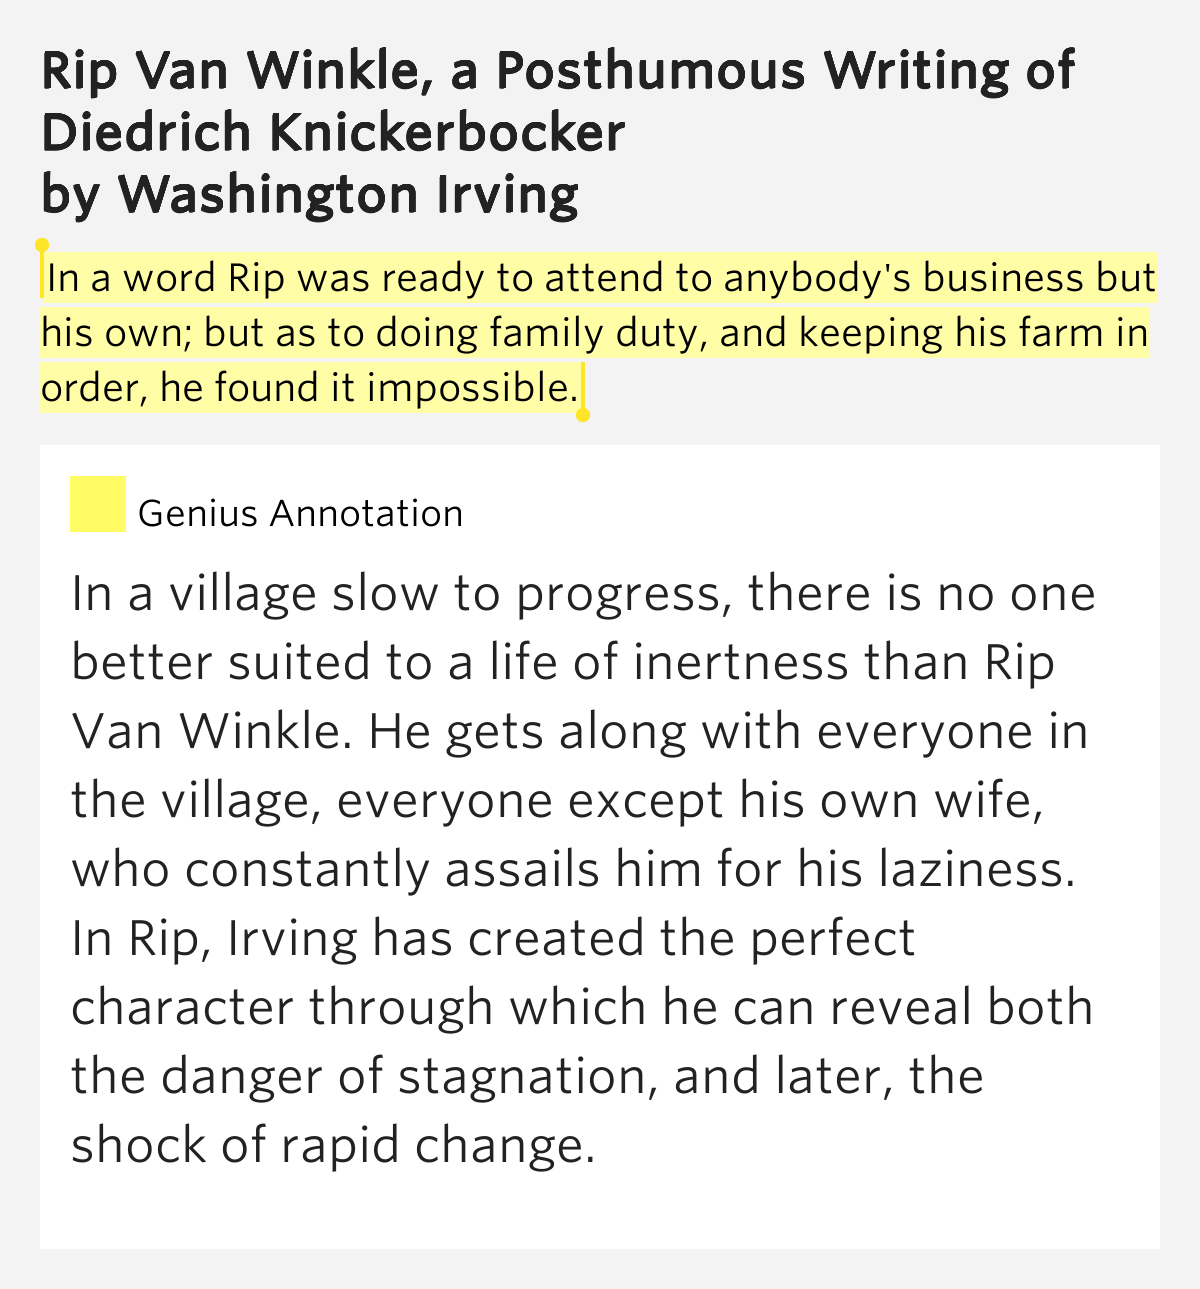 rip van winkle term paper Rip van winkle term paper while the free essays can give you inspiration for writing, they cannot be used 'as is' because they will not meet your assignment's.